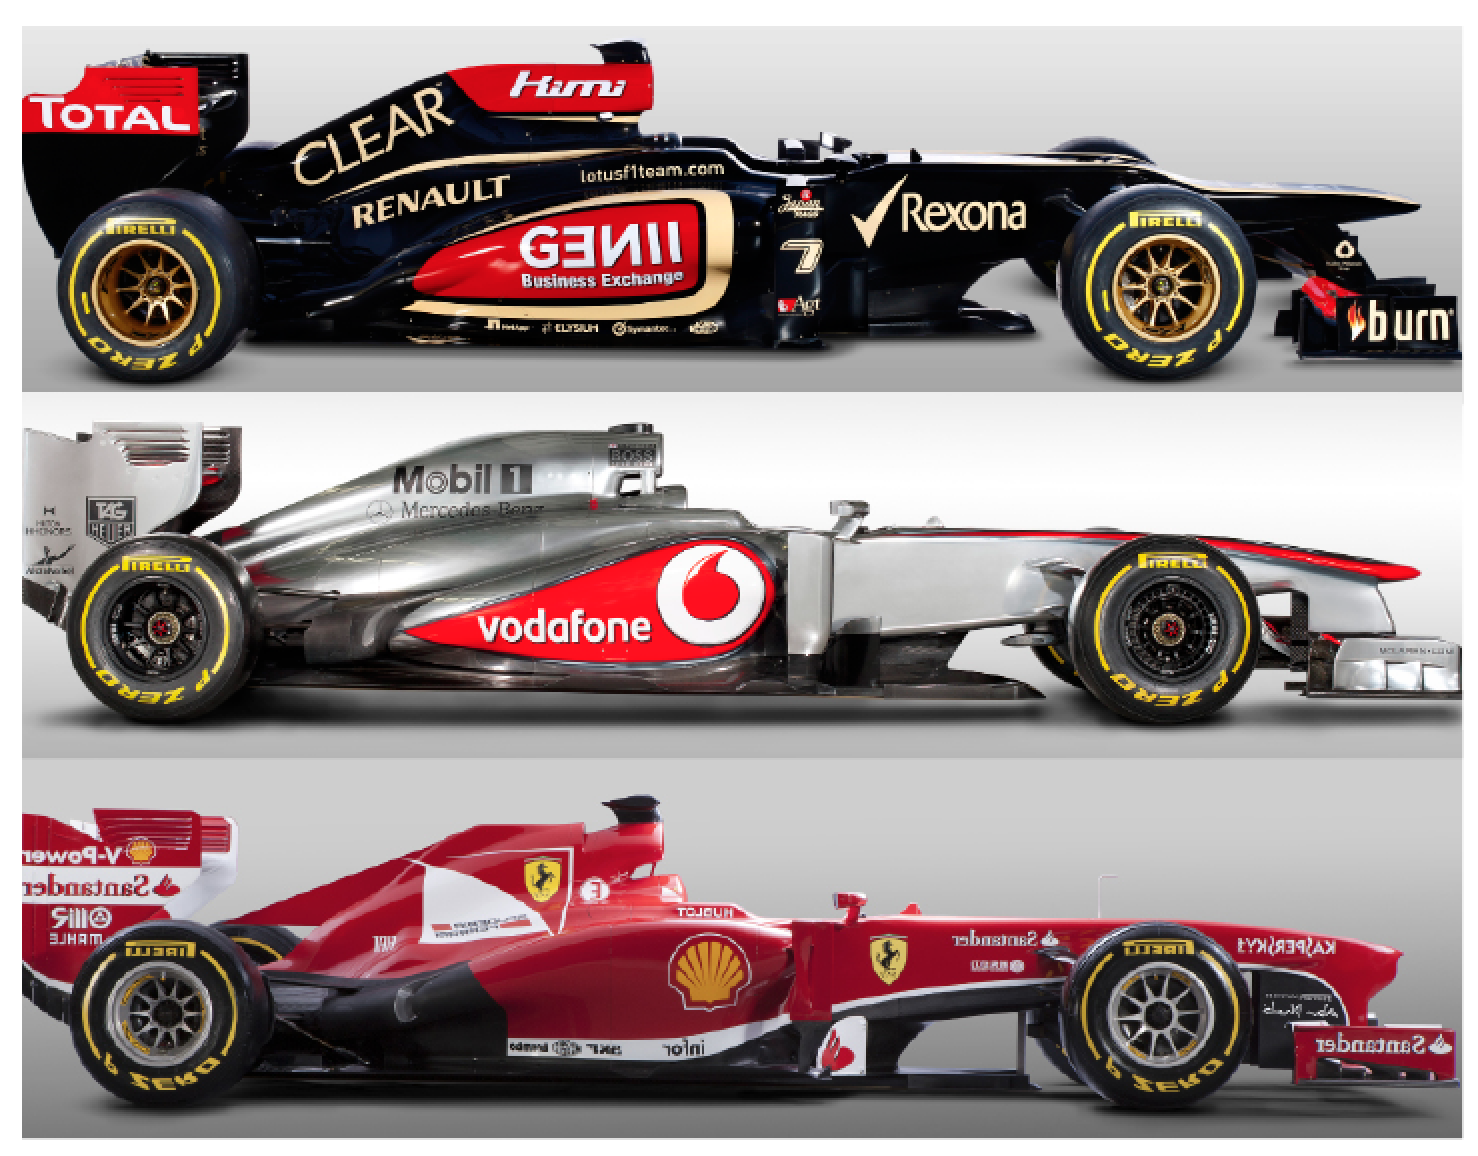 Comparing the new f1 cars